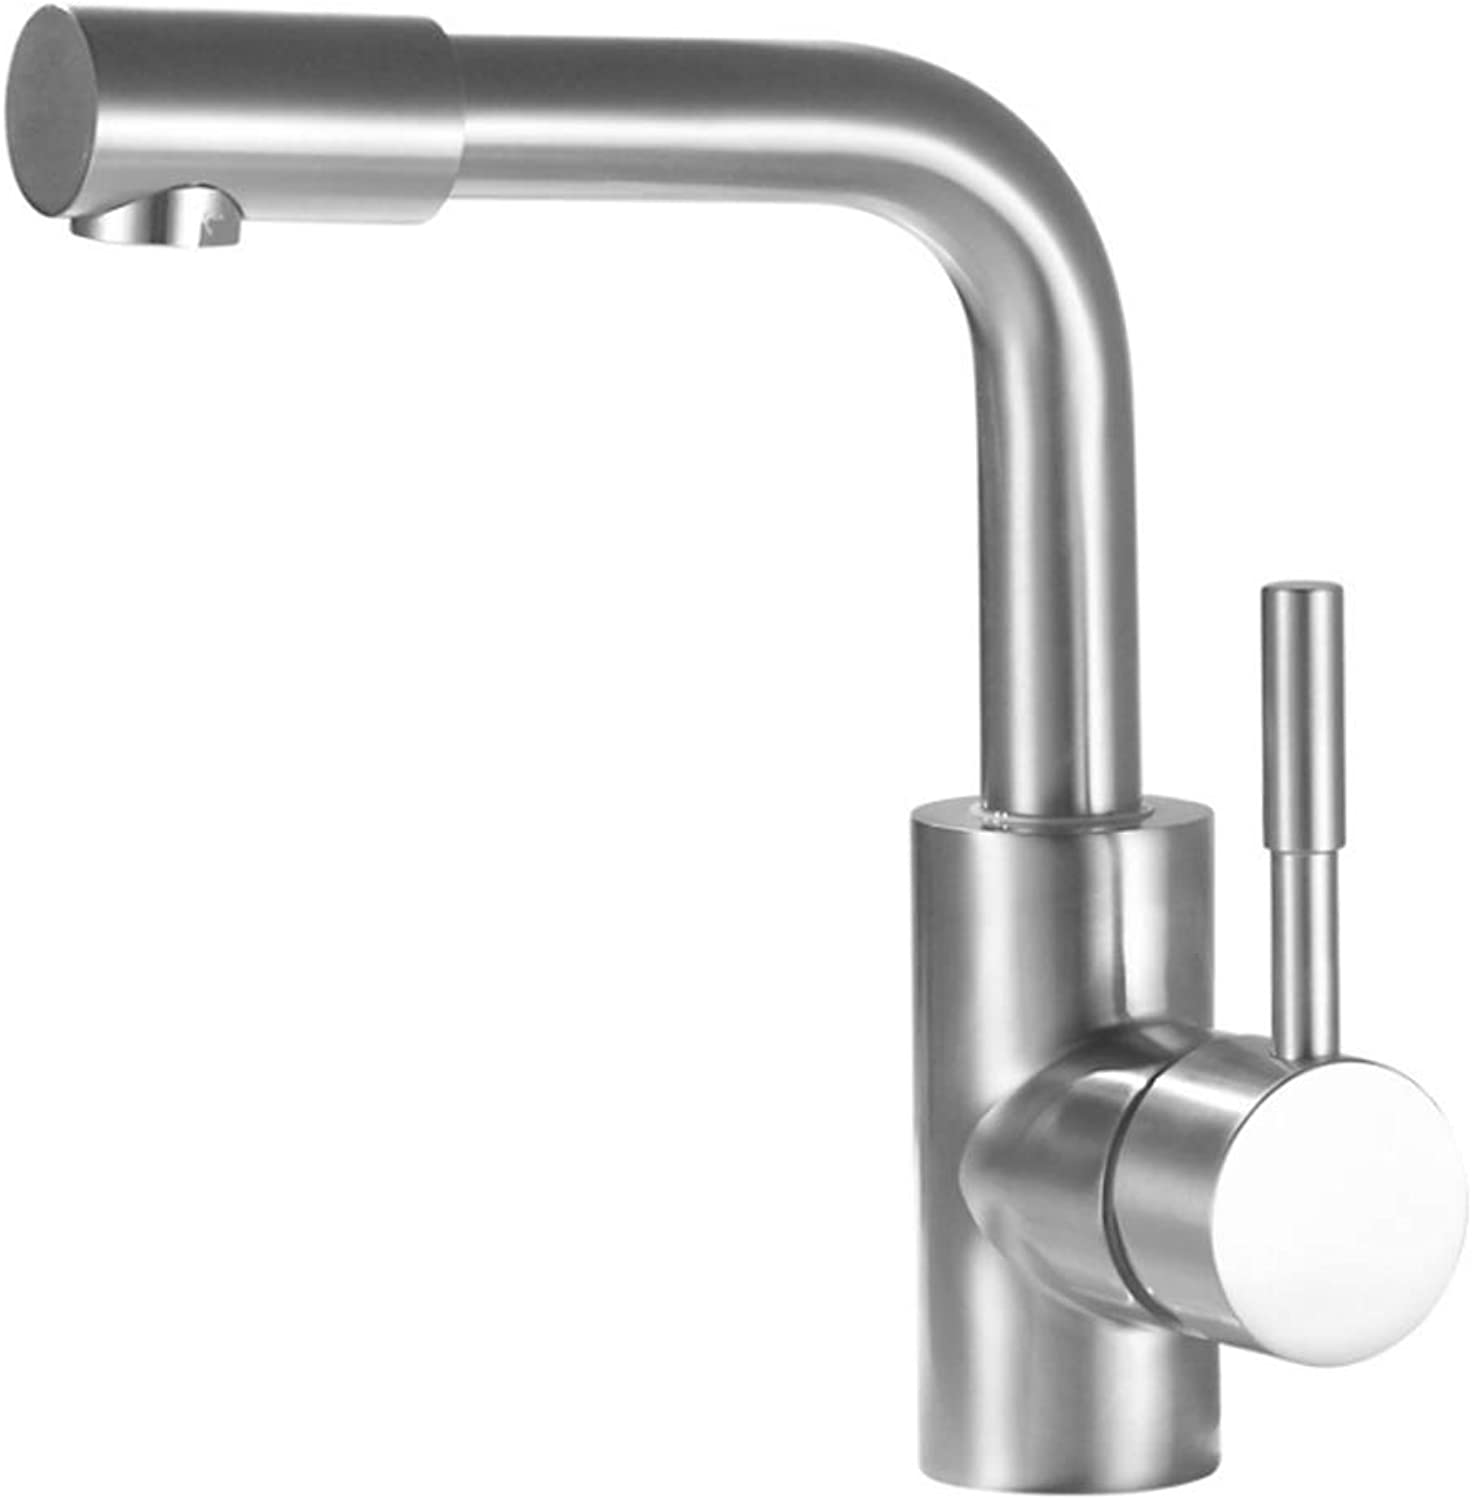 Kitchen Taps Faucet Modern Kitchen Sink Taps Stainless Steel360 Degree redary Cold and Hot Bathroom Faucet